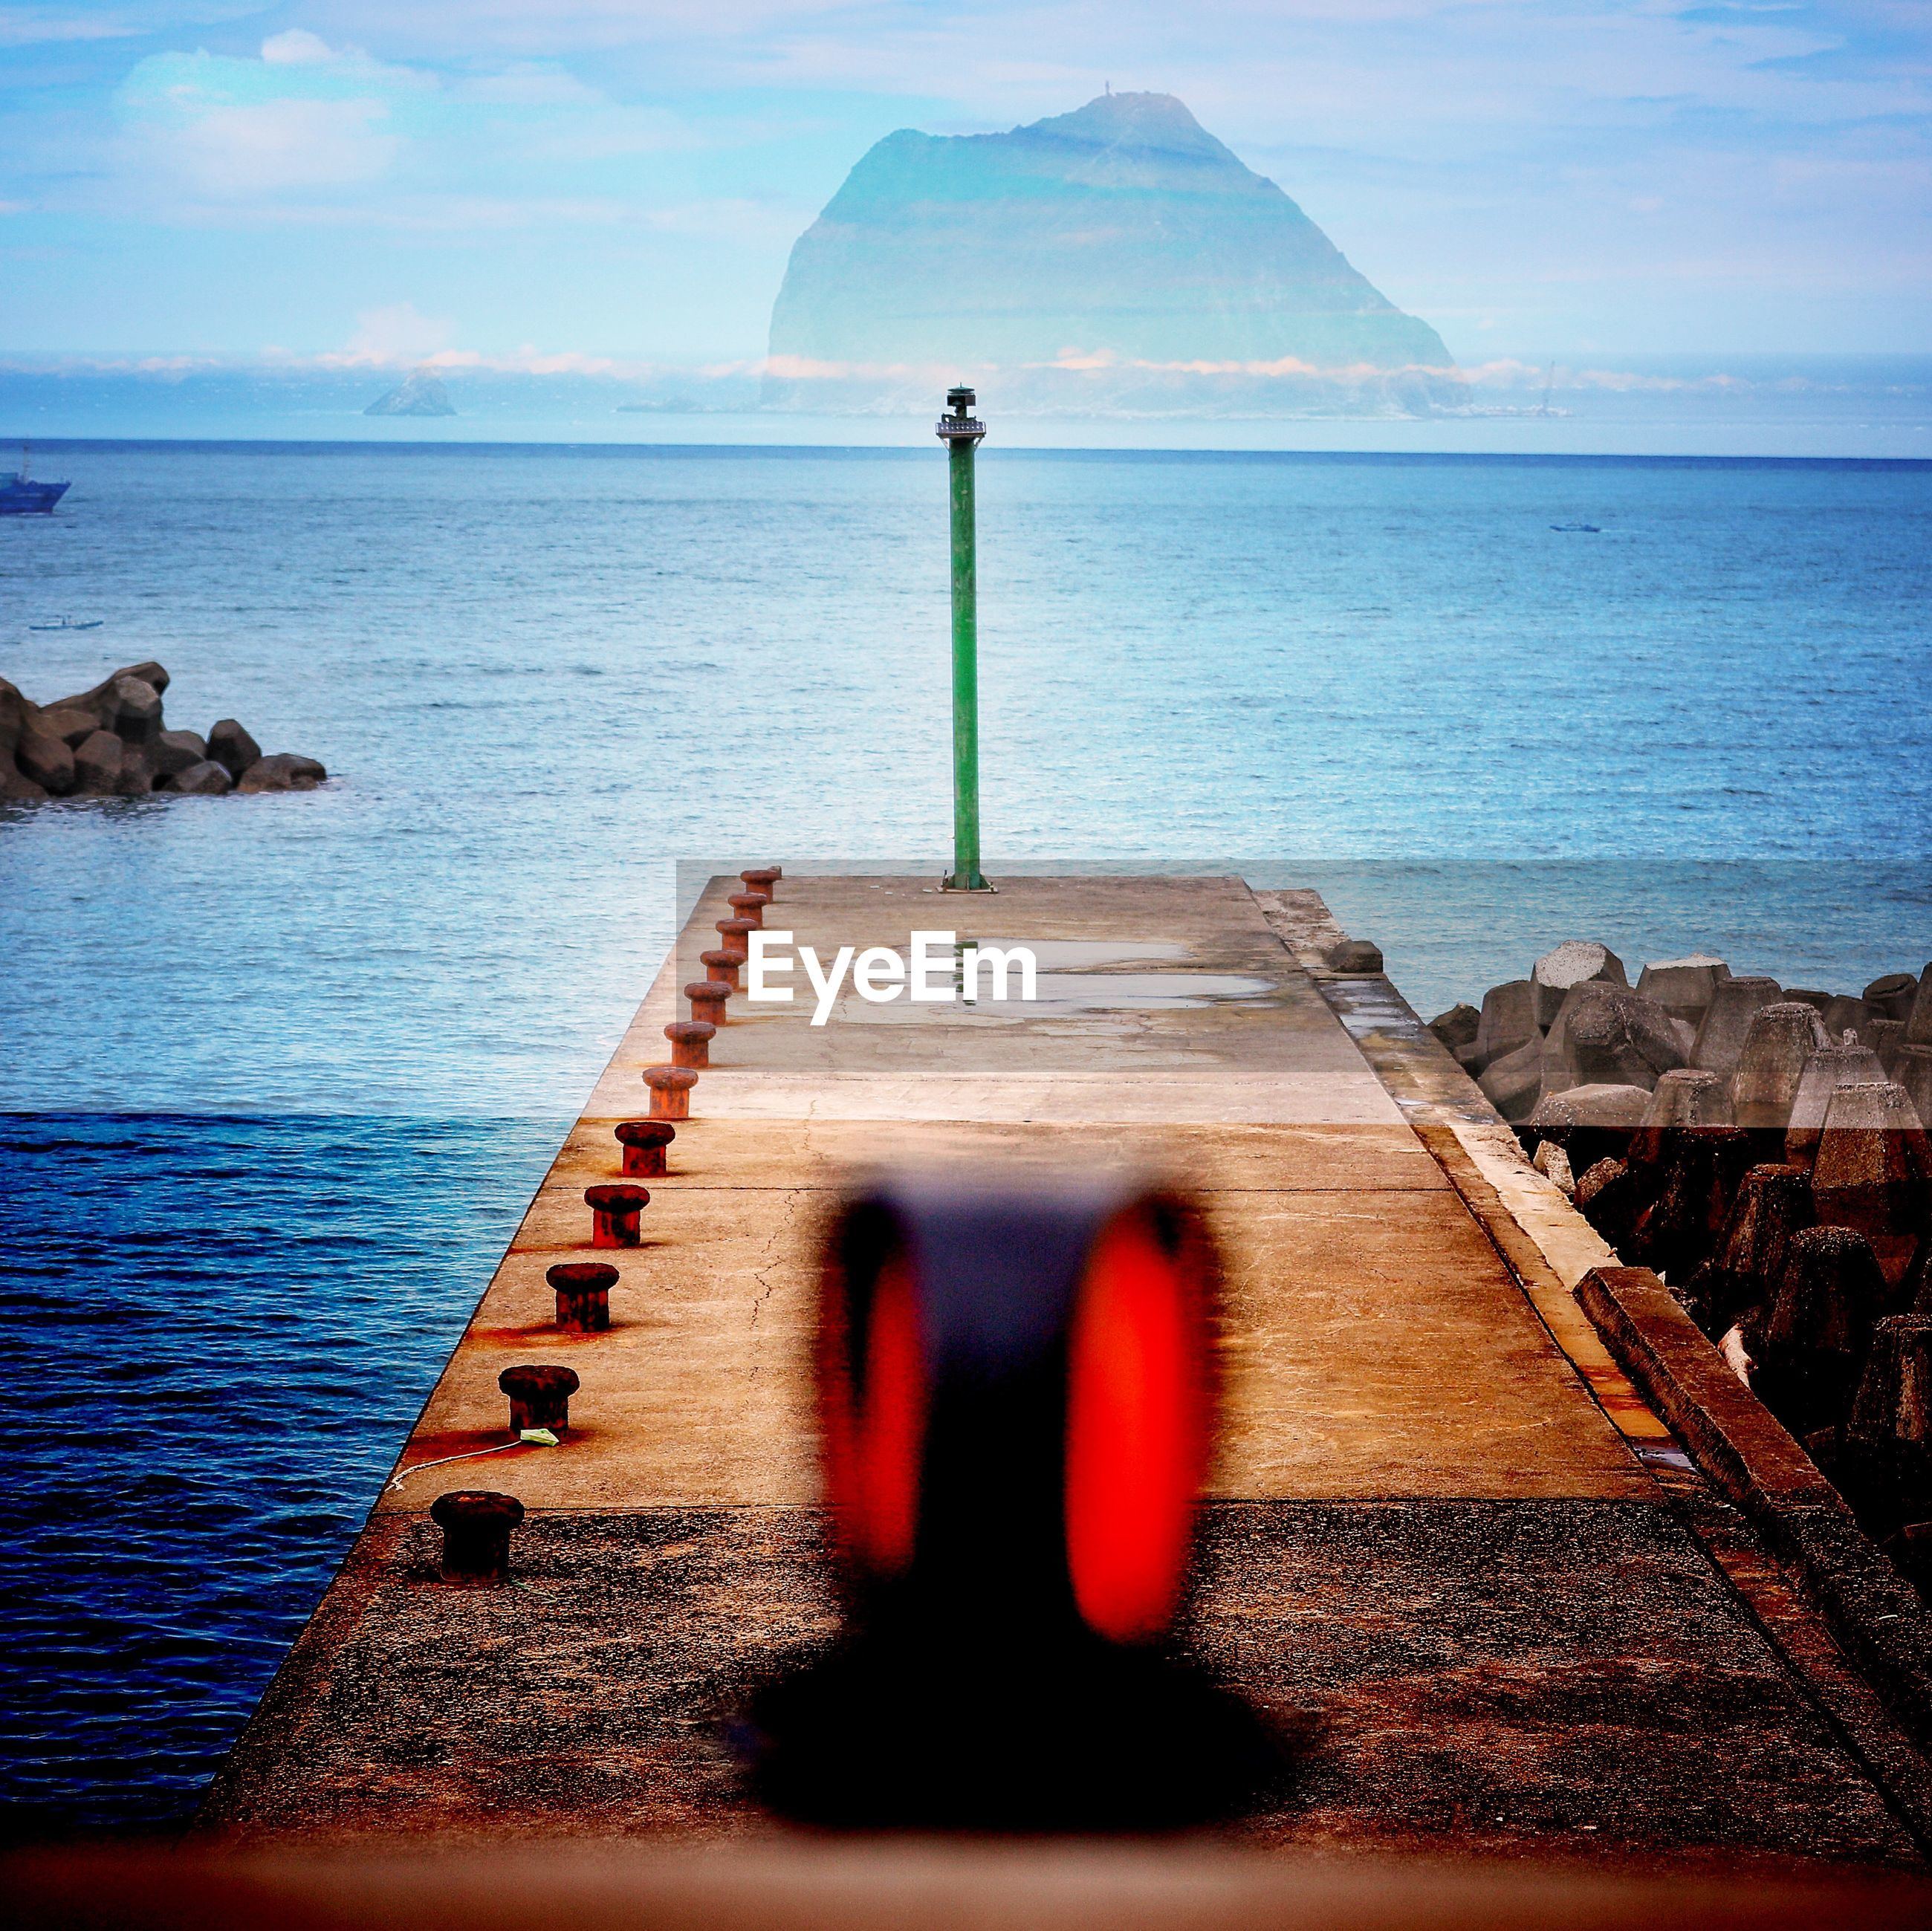 Blurred motion of equipment on pier at beach